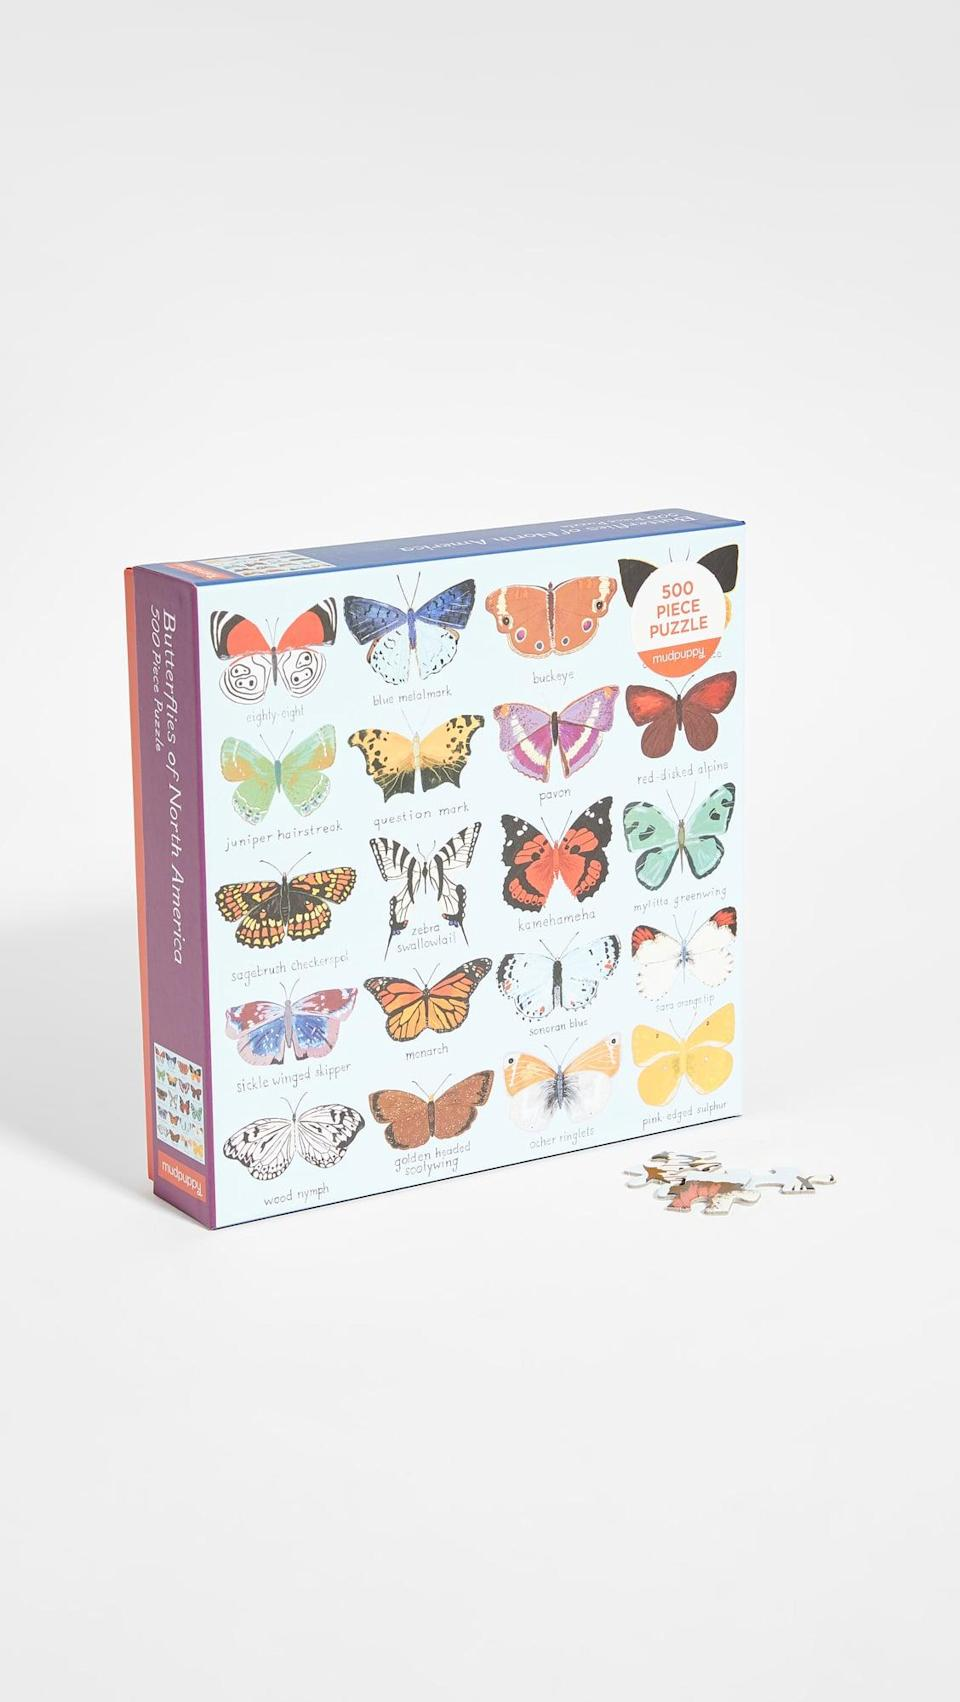 <p>This holiday season, they'll be preoccupied with this <span>Shopbop @Home Butterflies of North America 500 Piece Puzzle</span> ($14).</p>